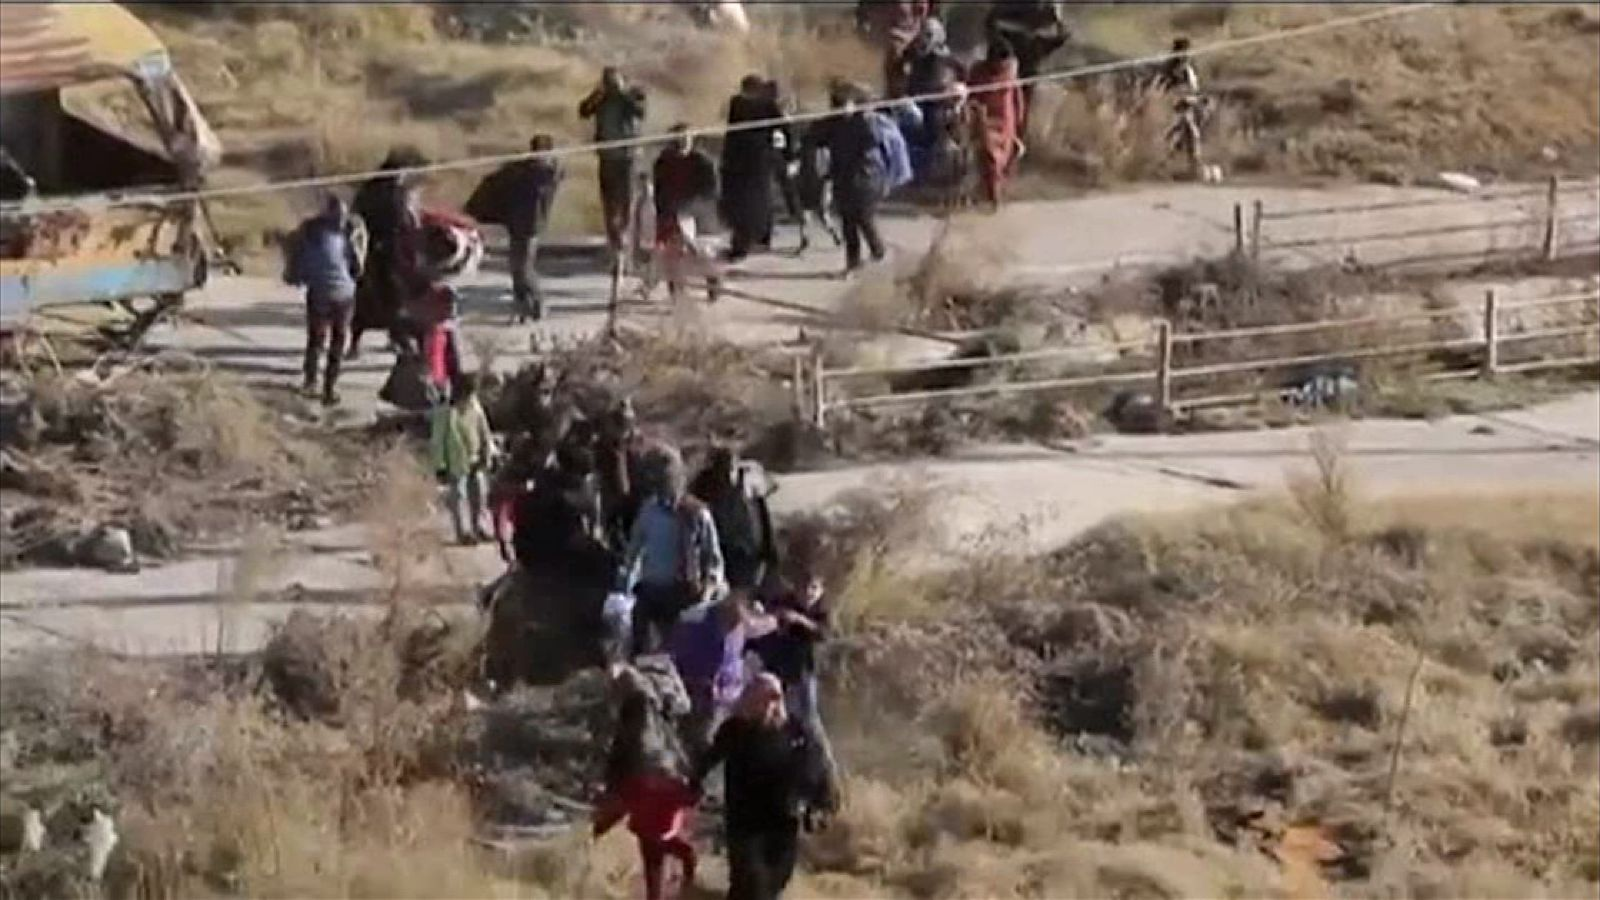 Civilians have been fleeing from east Aleppo where fighting is intensifying